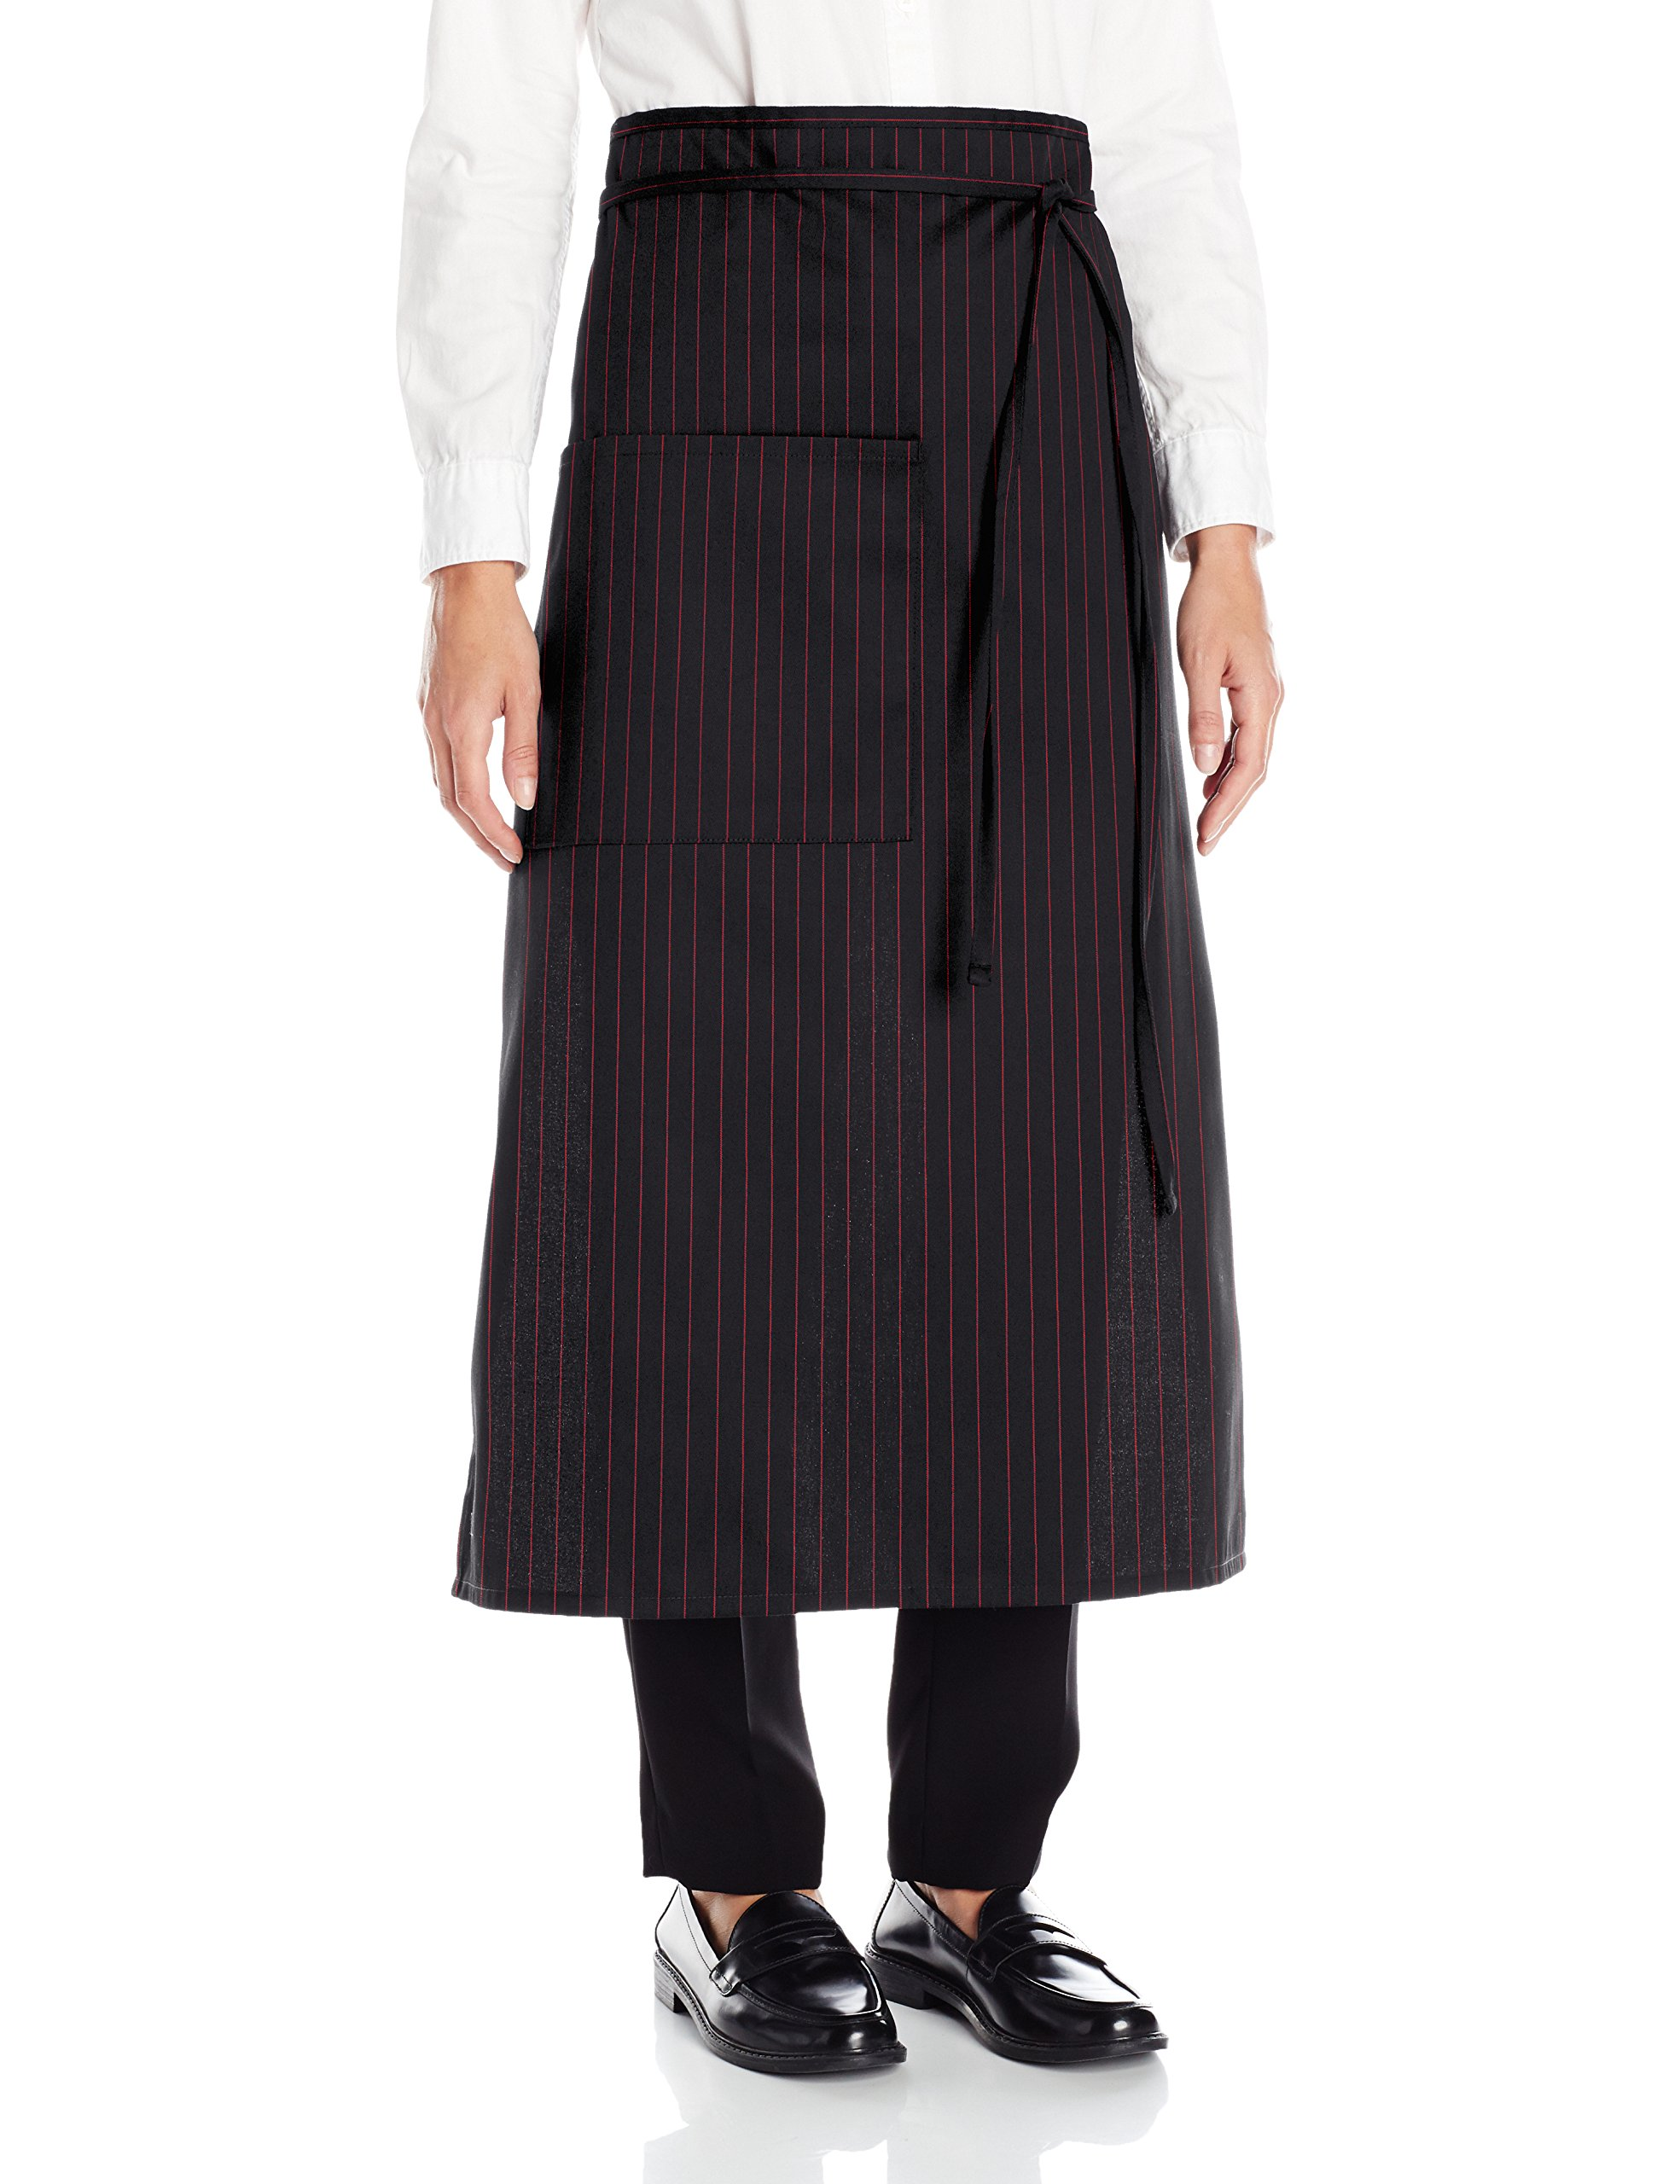 Uncommon Threads Unisex Bistro Apron One Pocket, Black/Red Pin Stripe, One Size